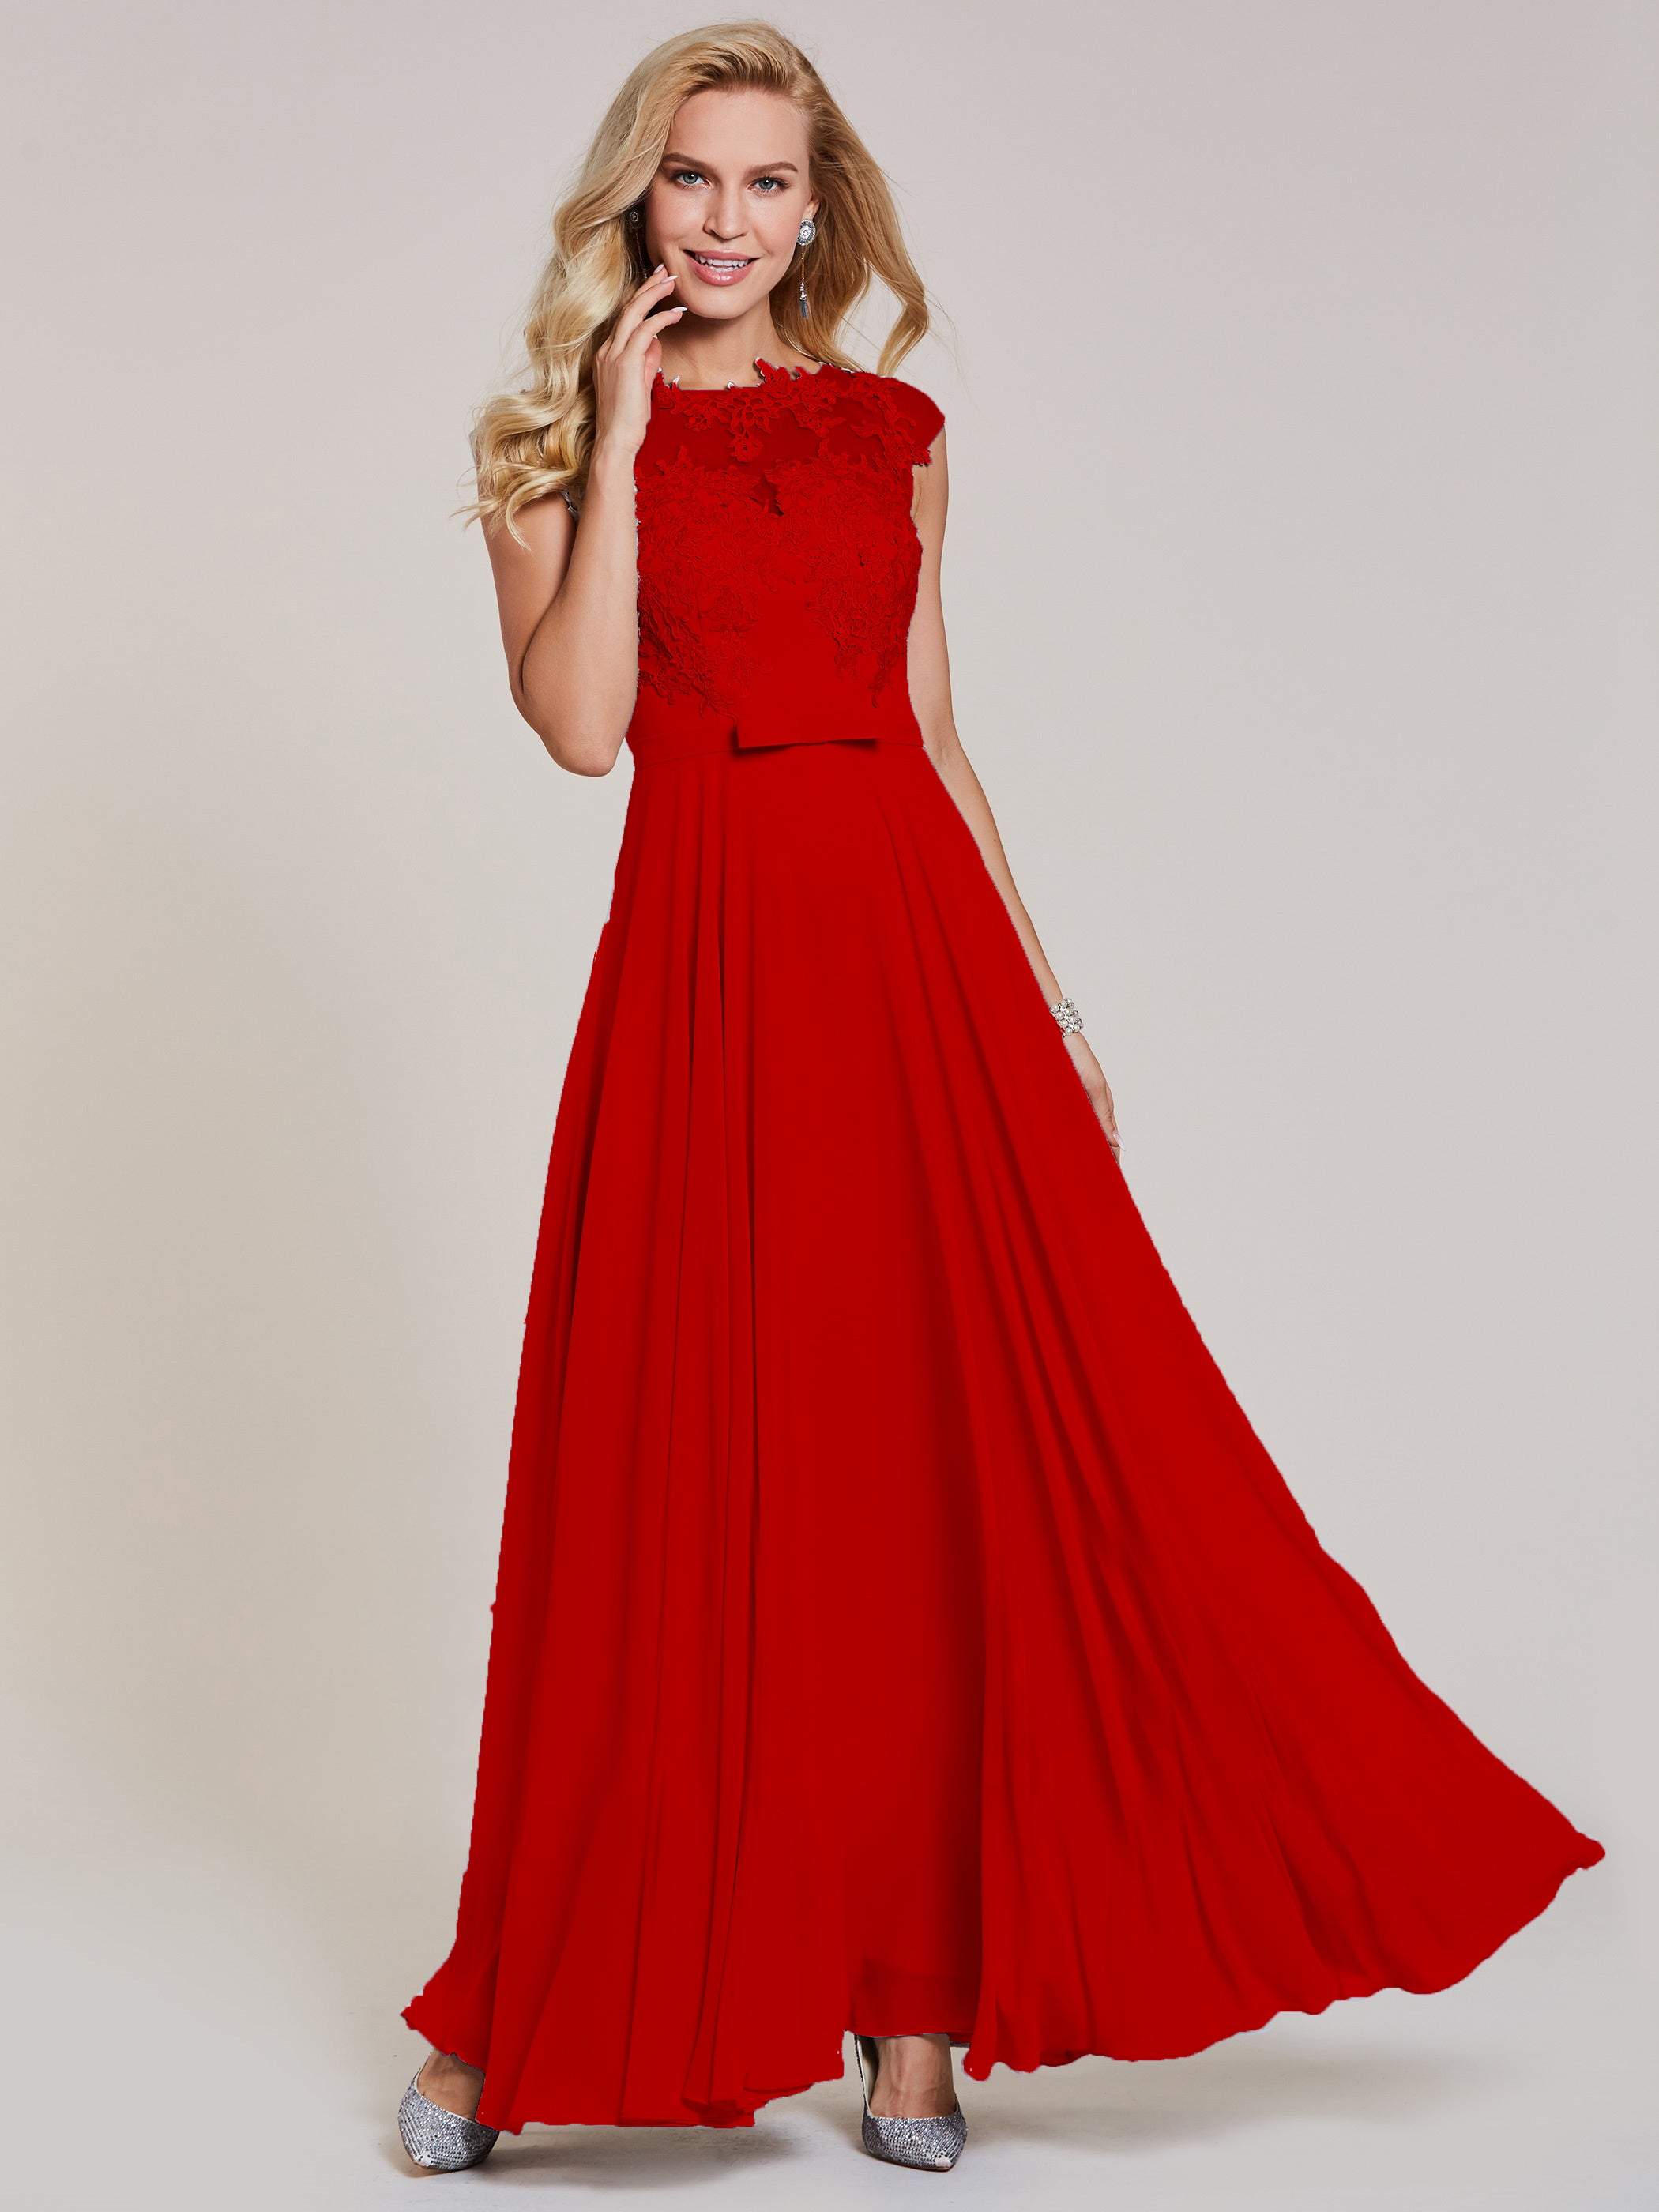 Red Wedding Dresses.Christie Red